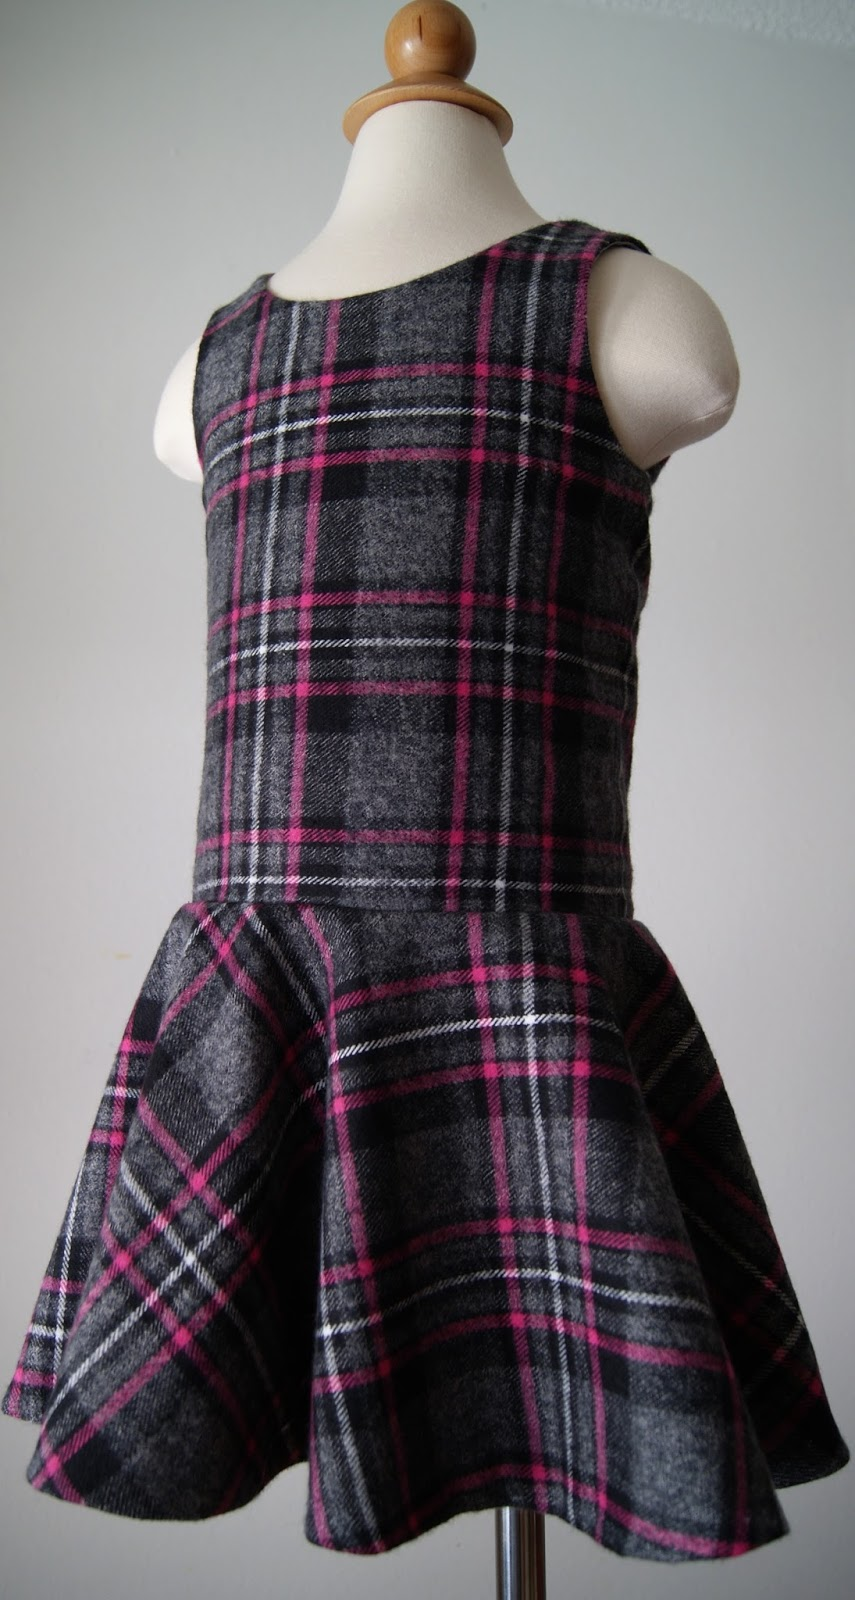 Plaid Dress by nestfullofeggs